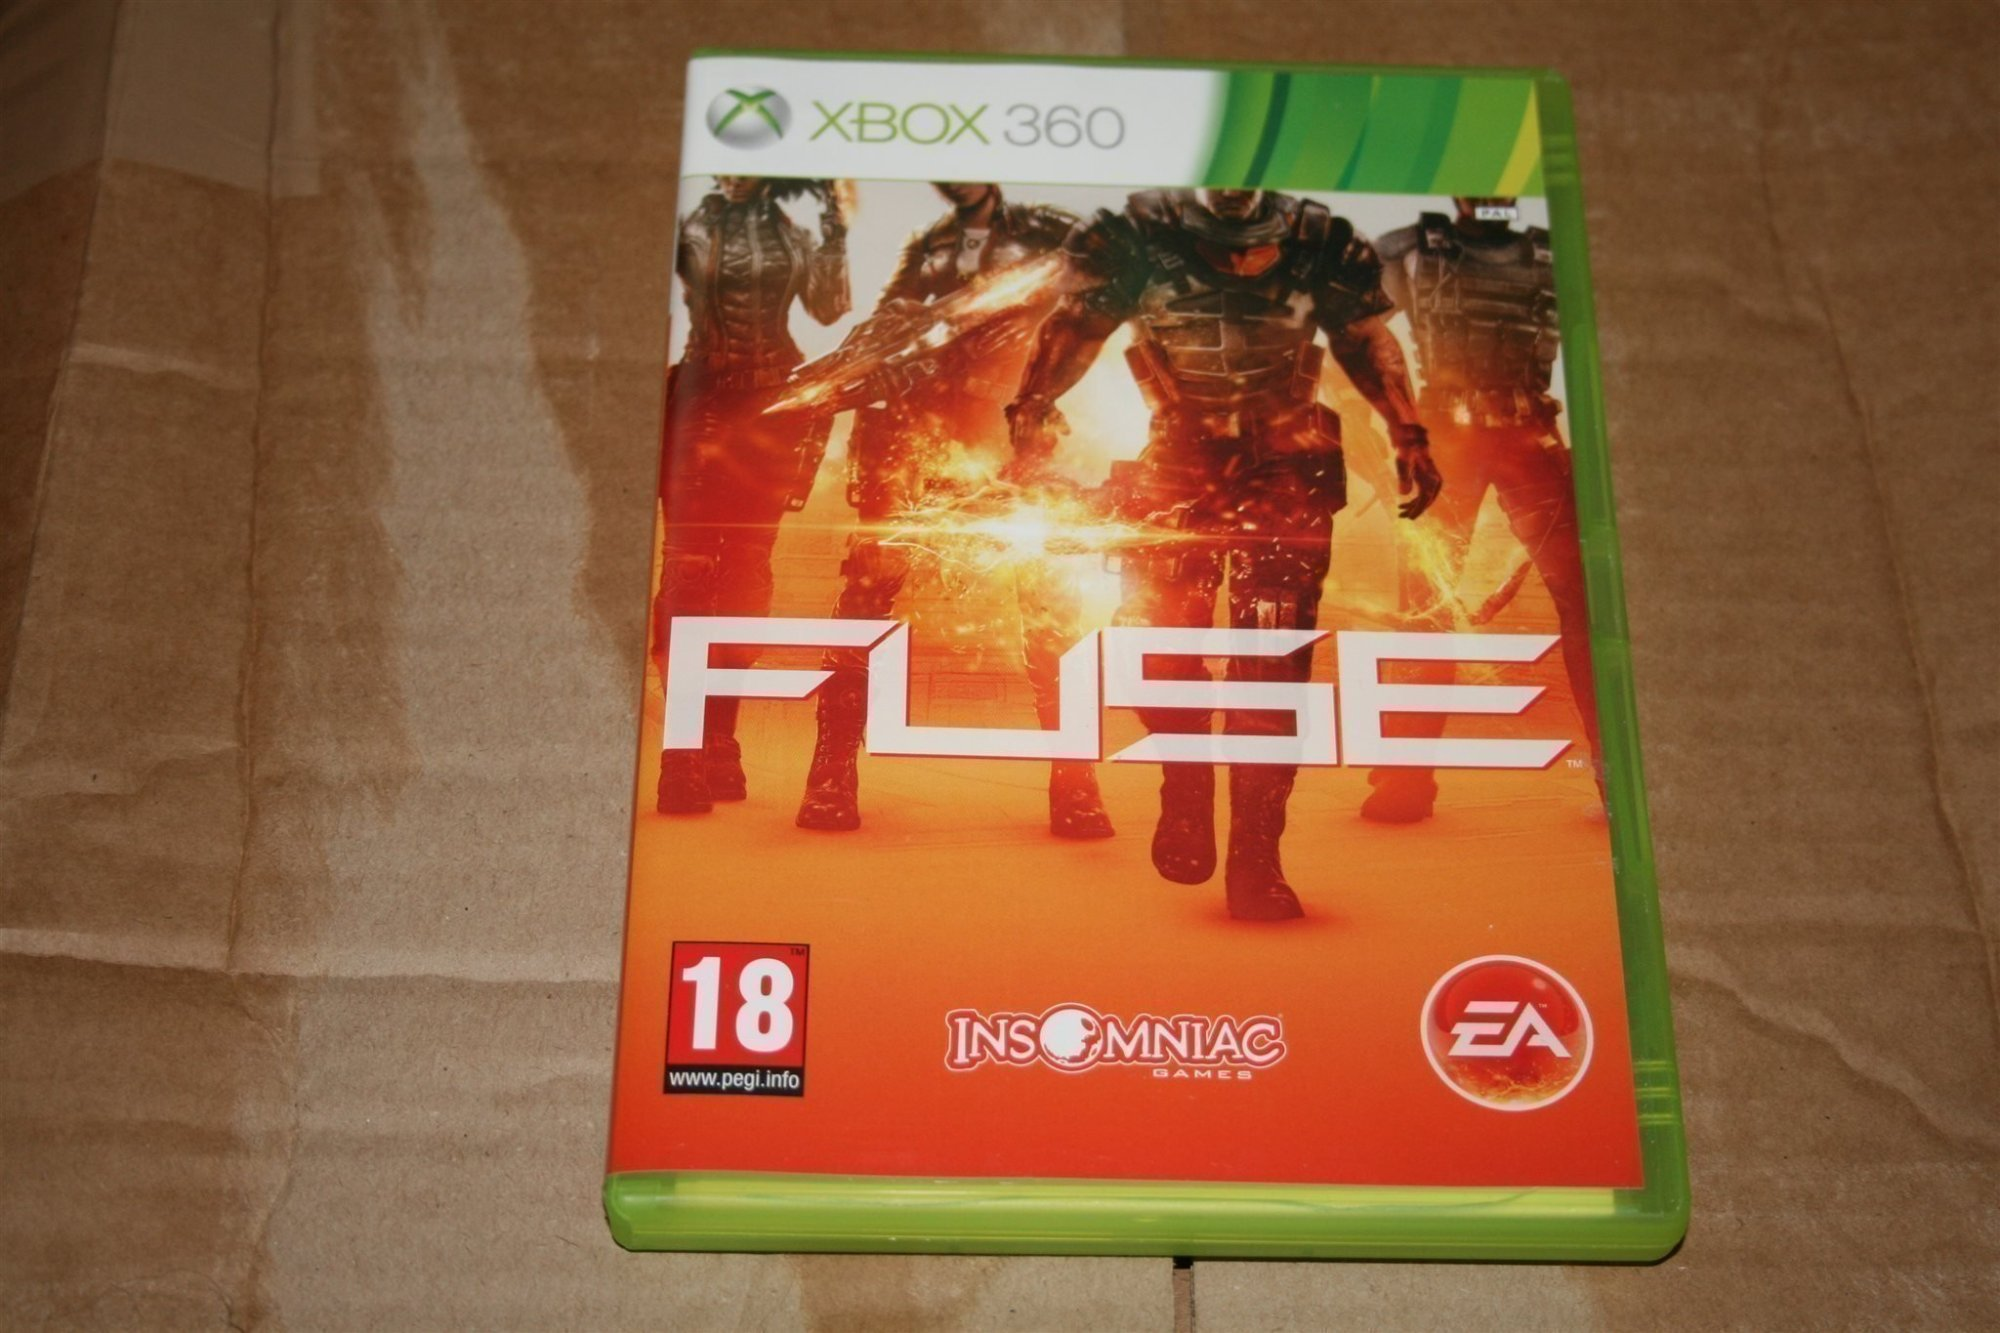 hight resolution of fuse xbox 360